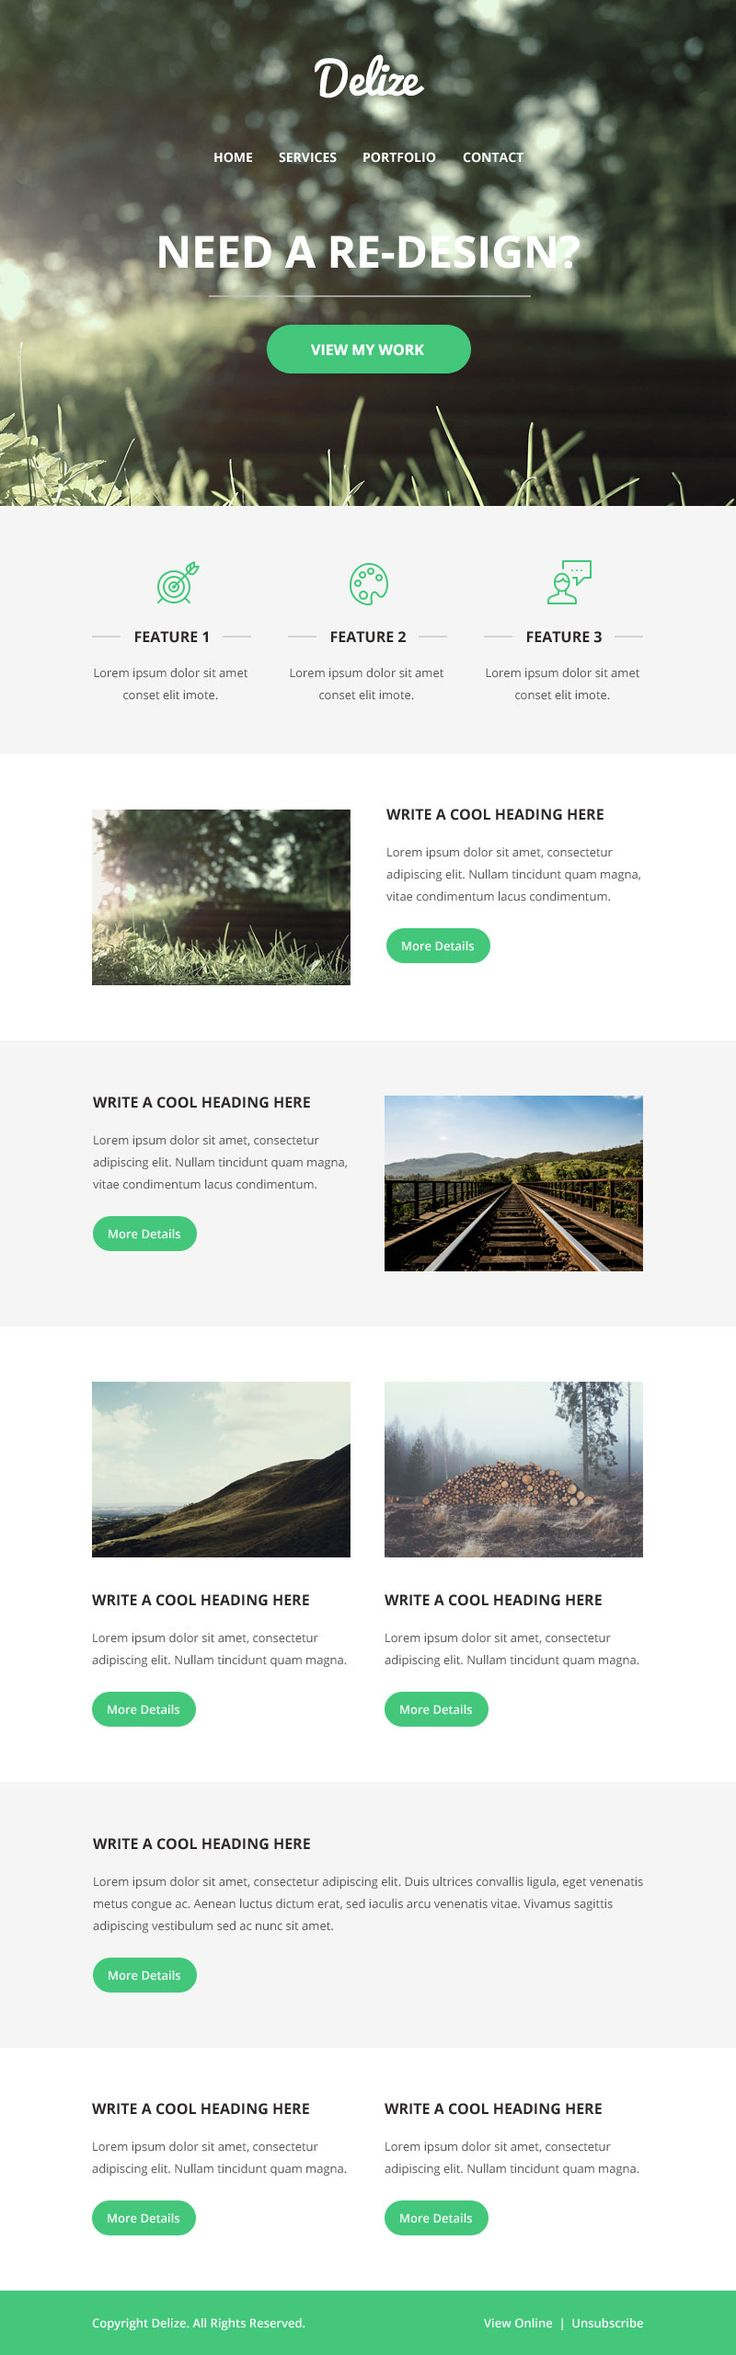 Delize - Free Email Template